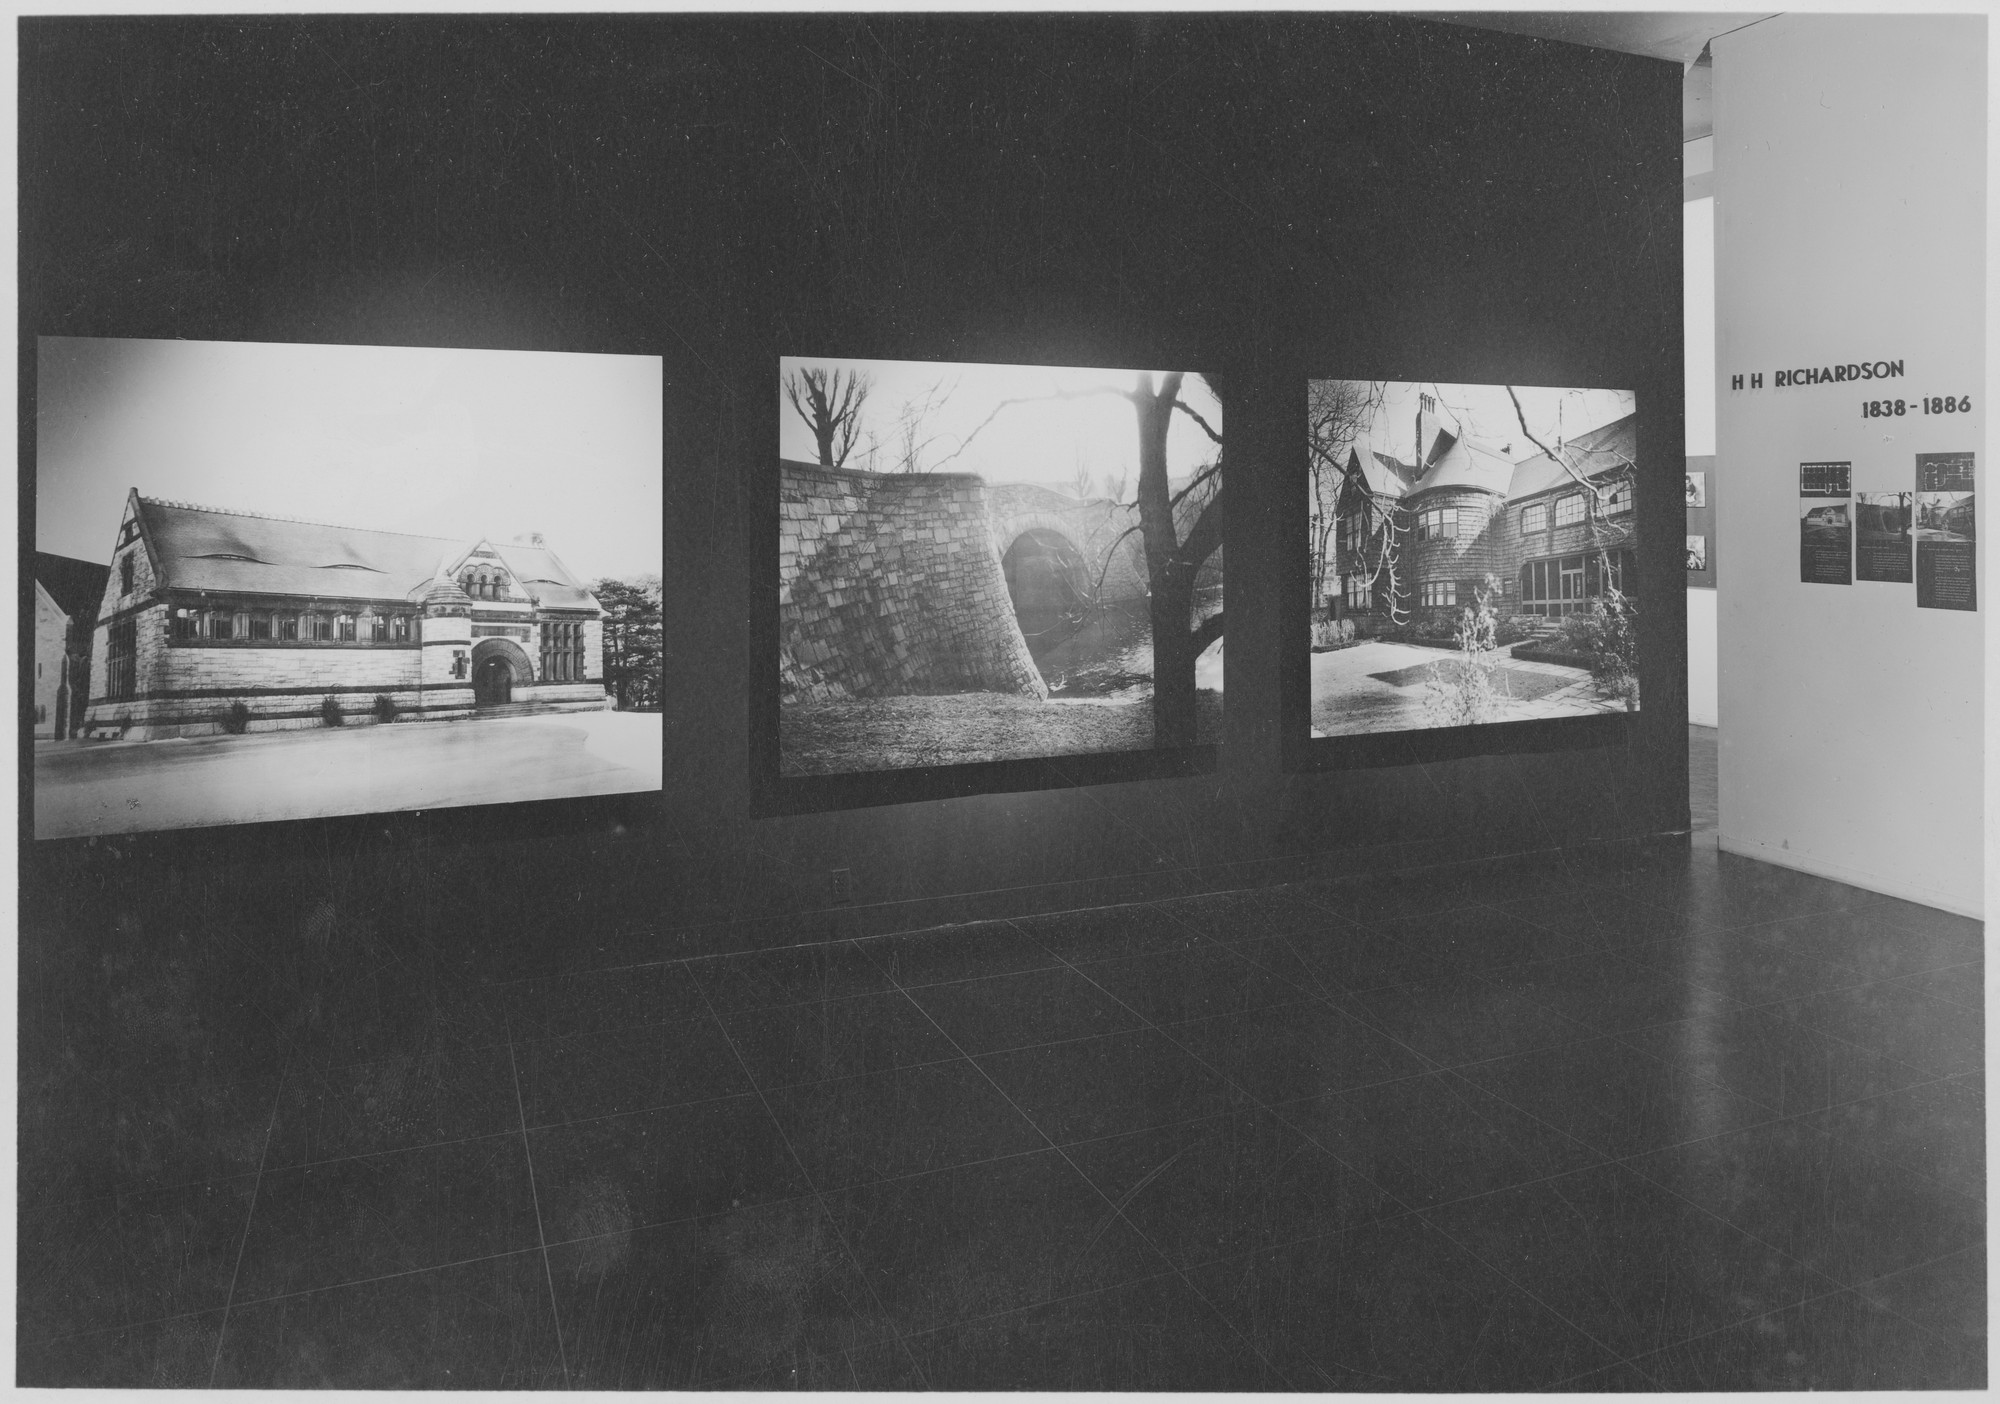 "Installation view of the exhibition,""Henry Hobson Richardson:  1838-1886 Architectural Masterpieces."" February 4, 1947–May 26, 1947. Photographic Archive. The Museum of Modern Art Archives, New York. IN344.1. Photograph by Soichi Sunami."